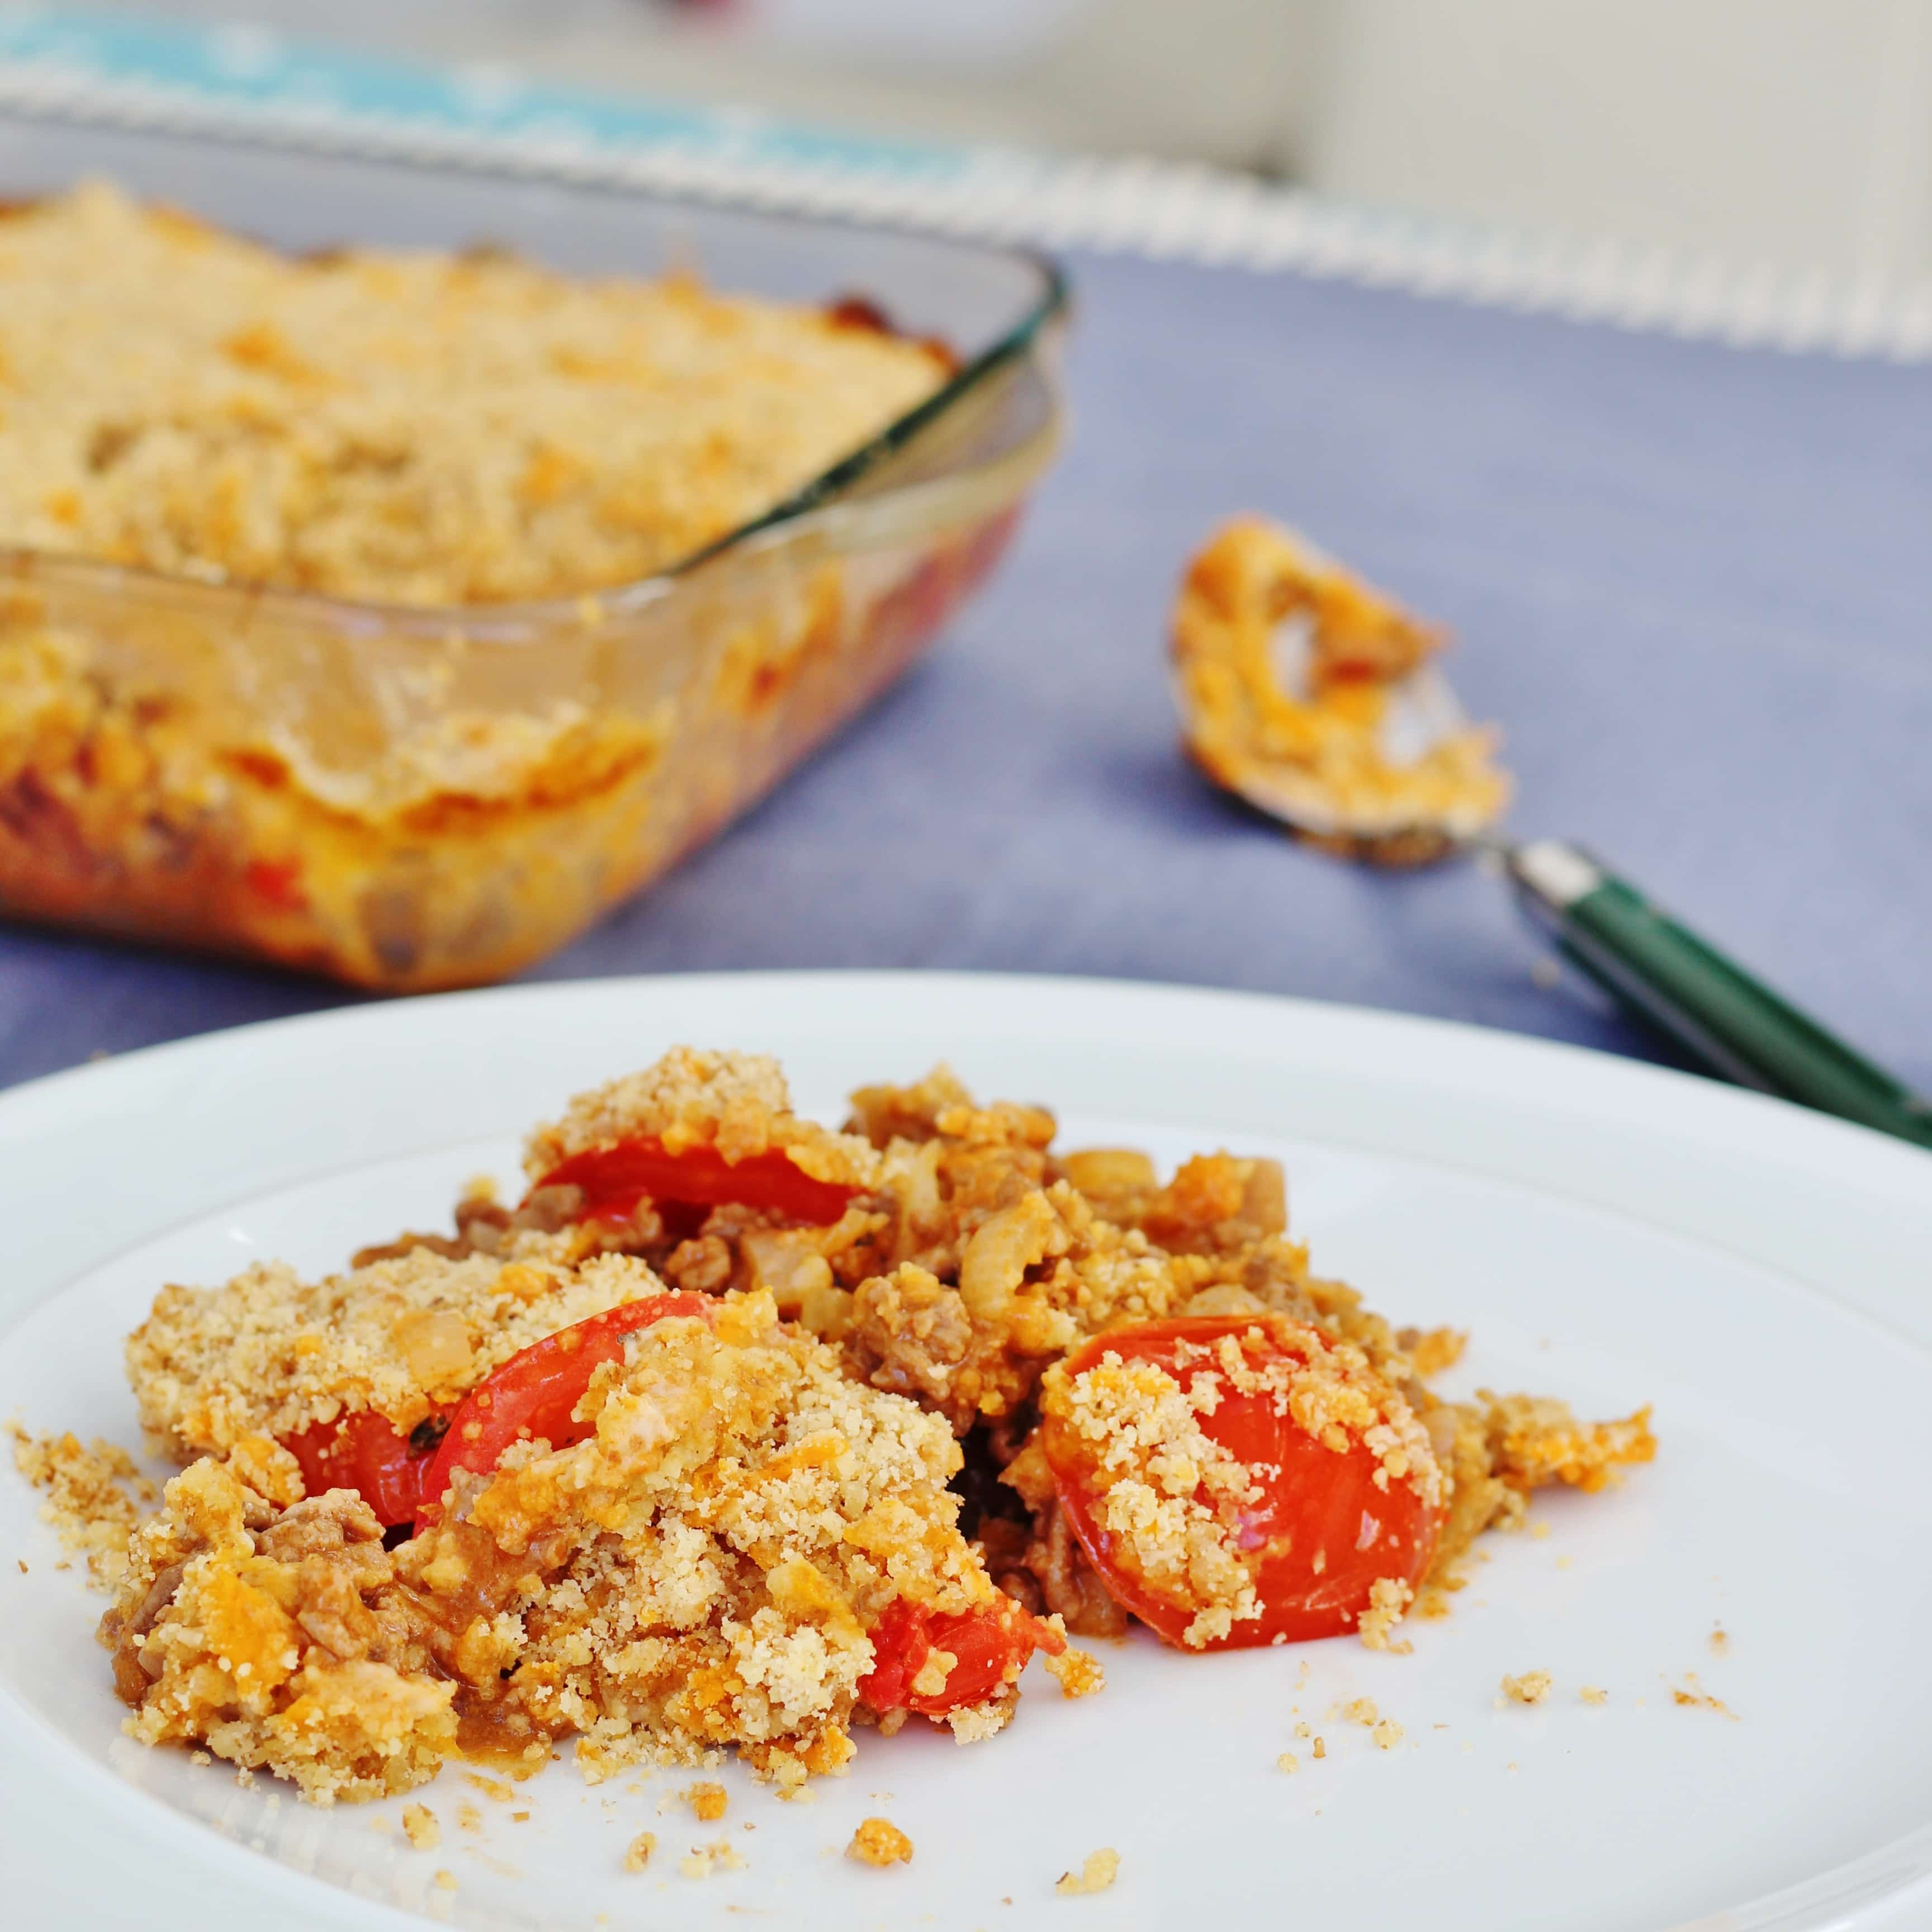 Mince and Tomato Crumble on a plate